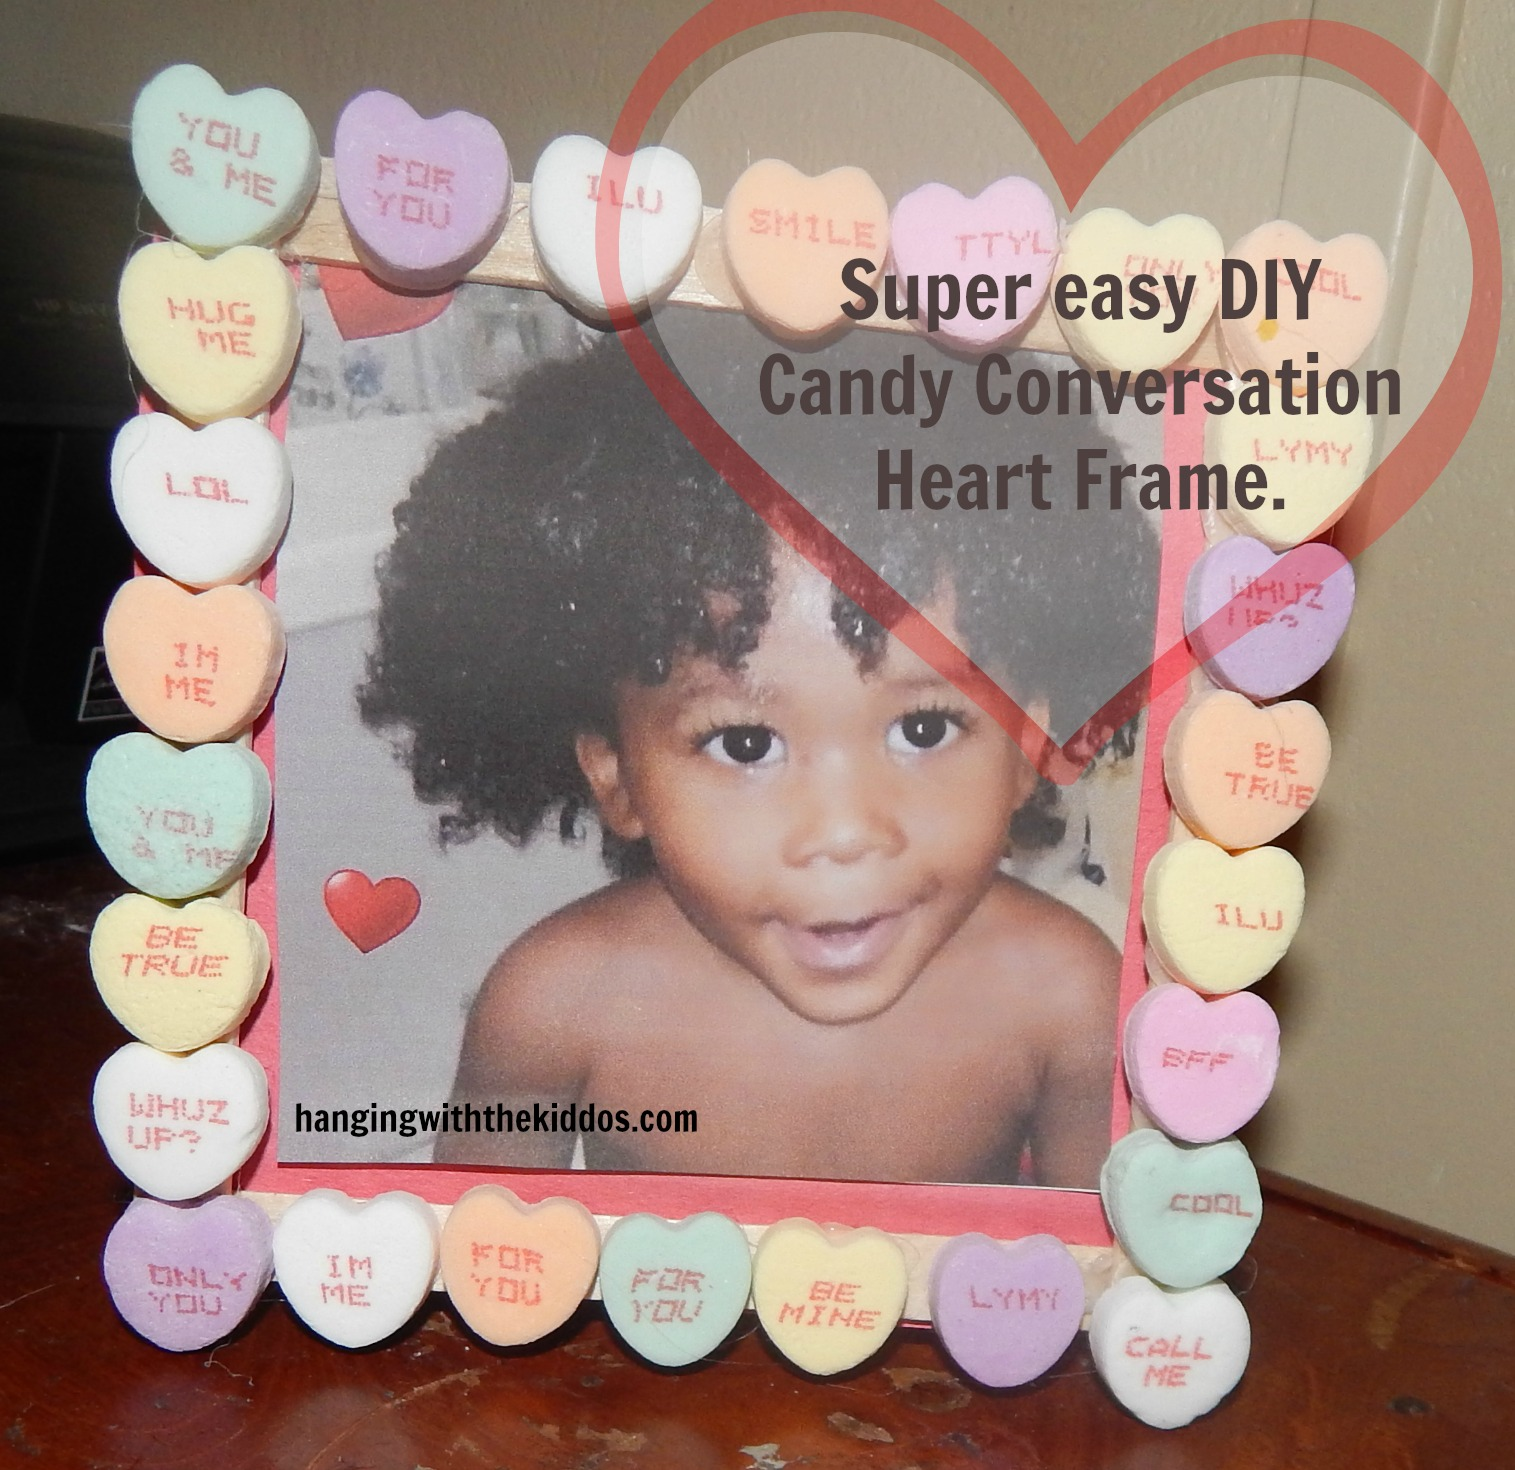 Super easy DIY Valentines Candy Conversation Heart Frame